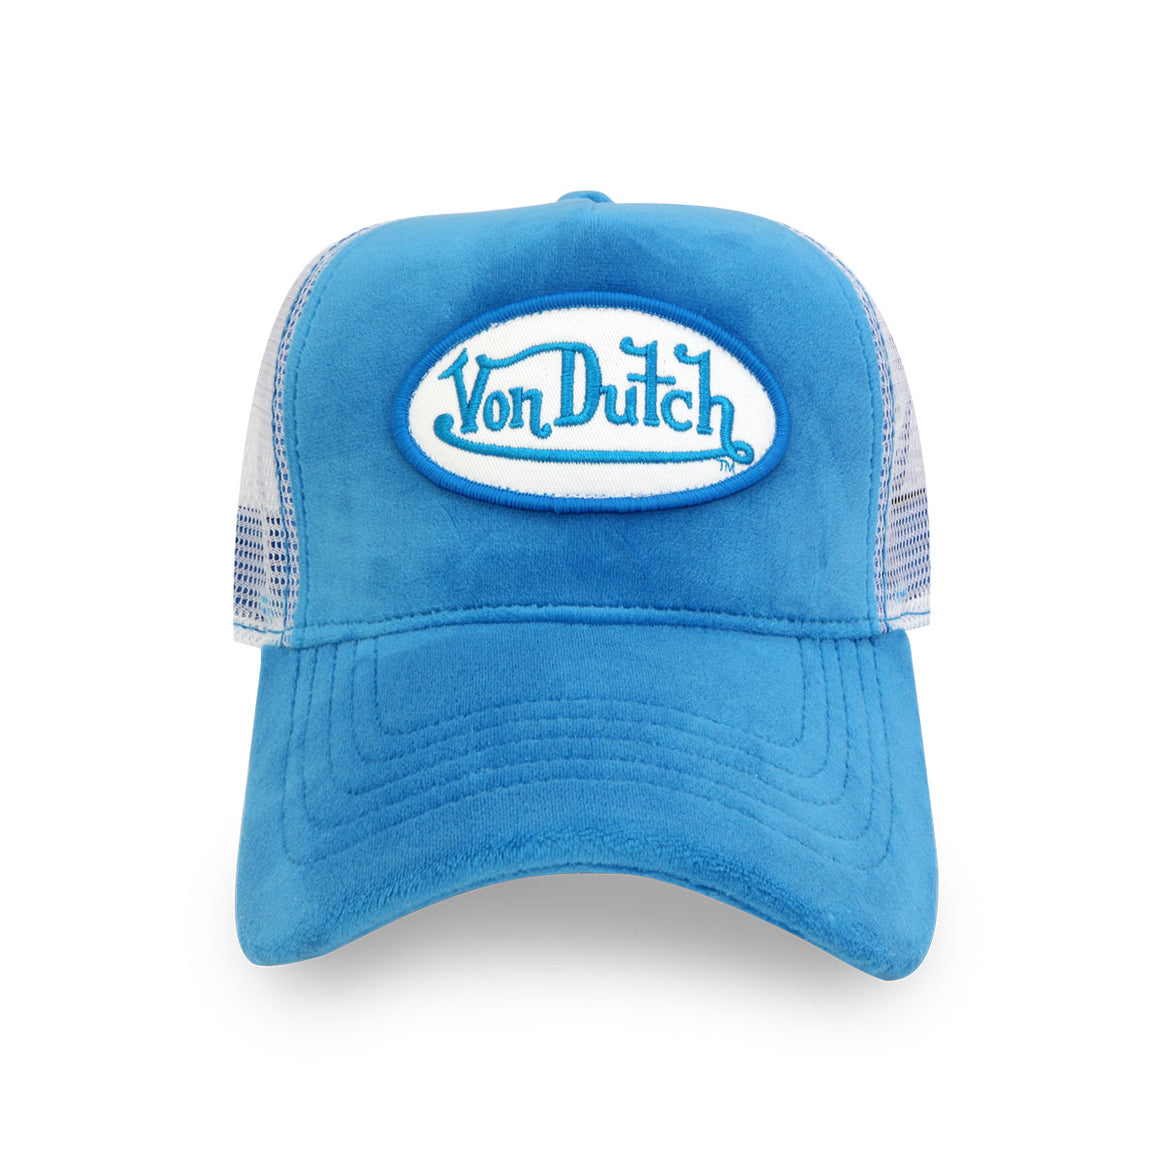 BLUE CRUSH VELVET TRUCKER